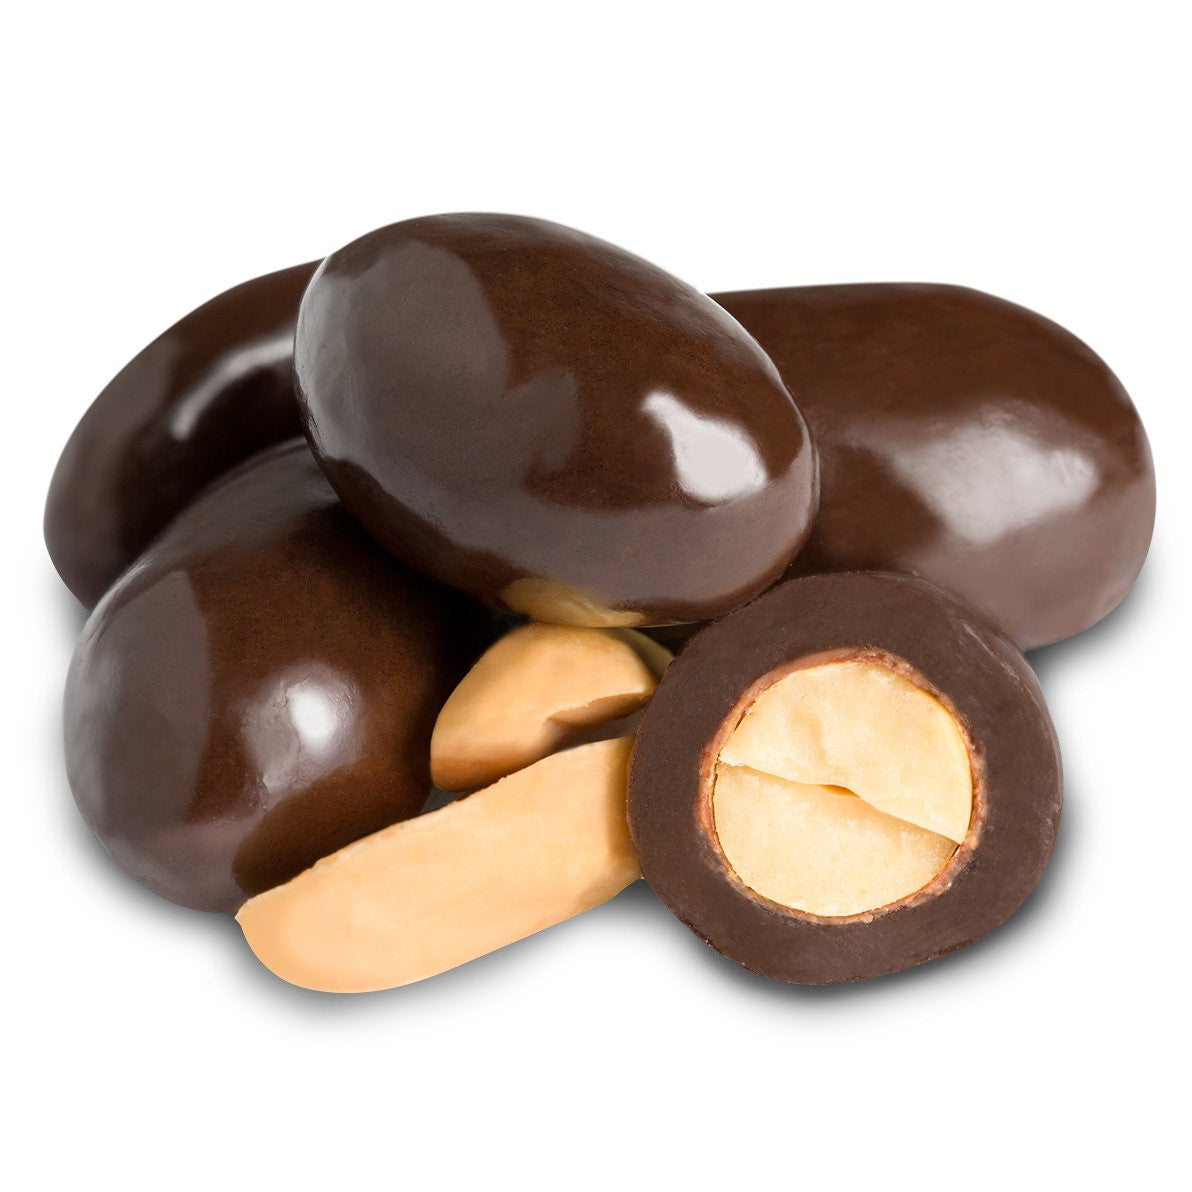 Milk Chocolate Double Dipped Peanuts Fun Factory Sweet